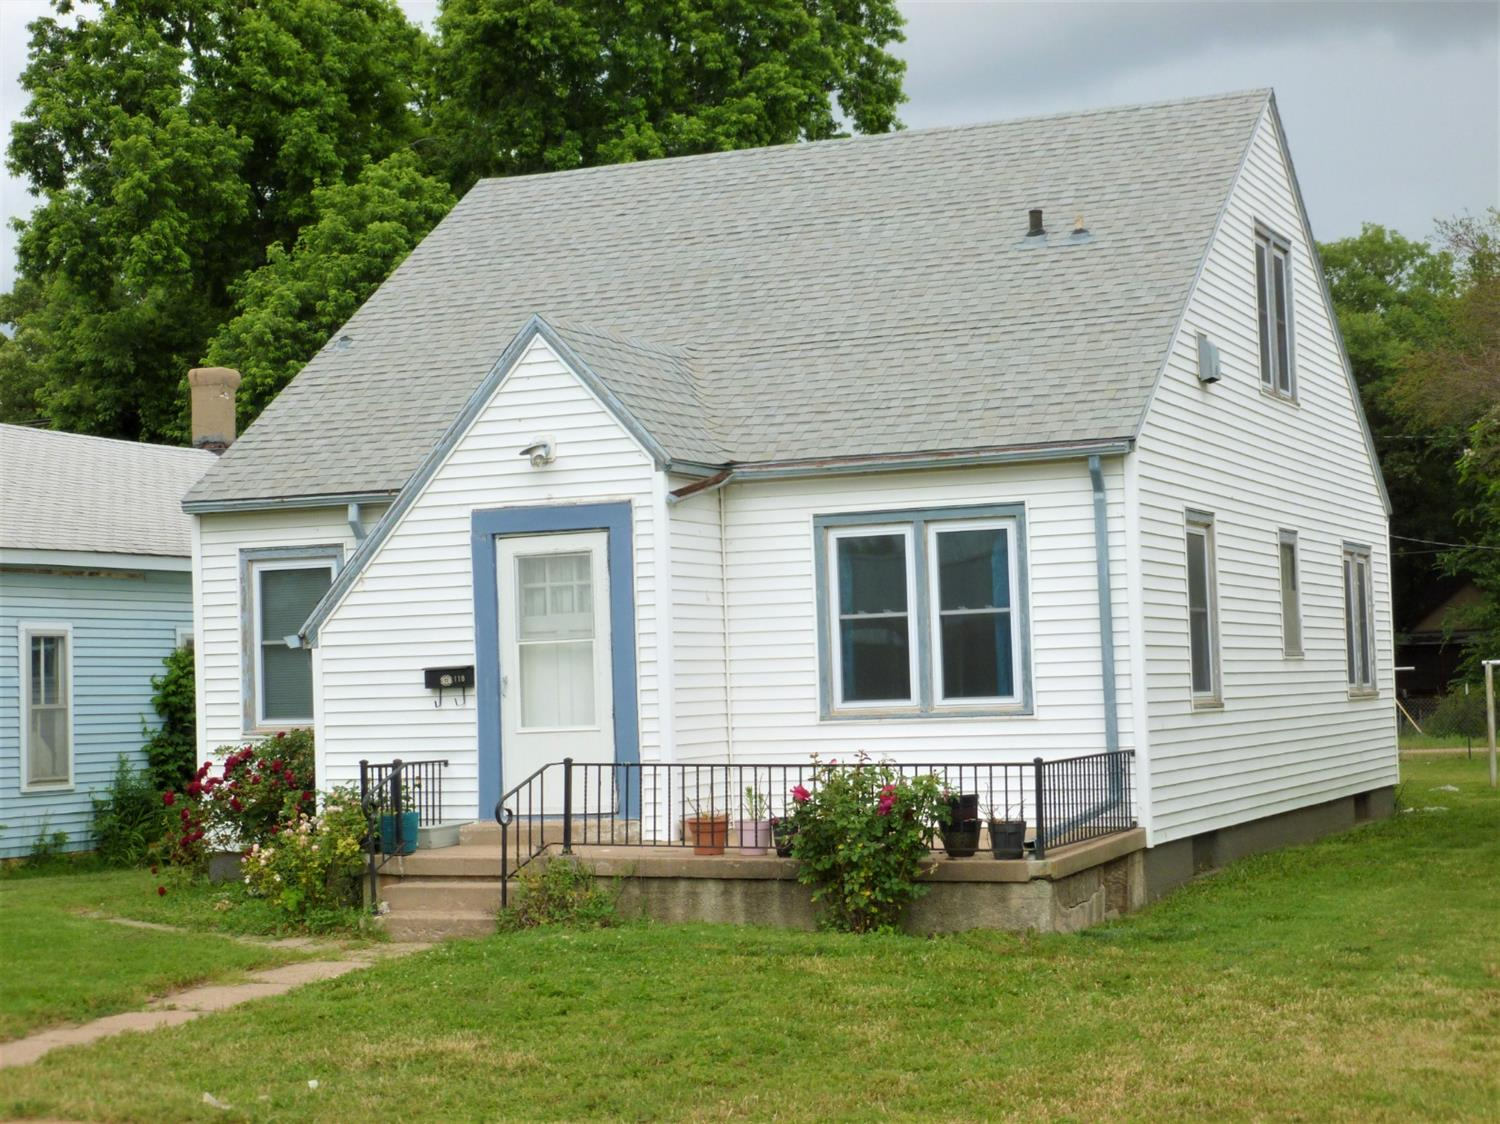 In need of some TLC. 3 bedroom, 3 bath, large walk-in closet upstairs, hardwood floors throughout. Nice home for first time buyer or for a flip home. Call for your showing today!